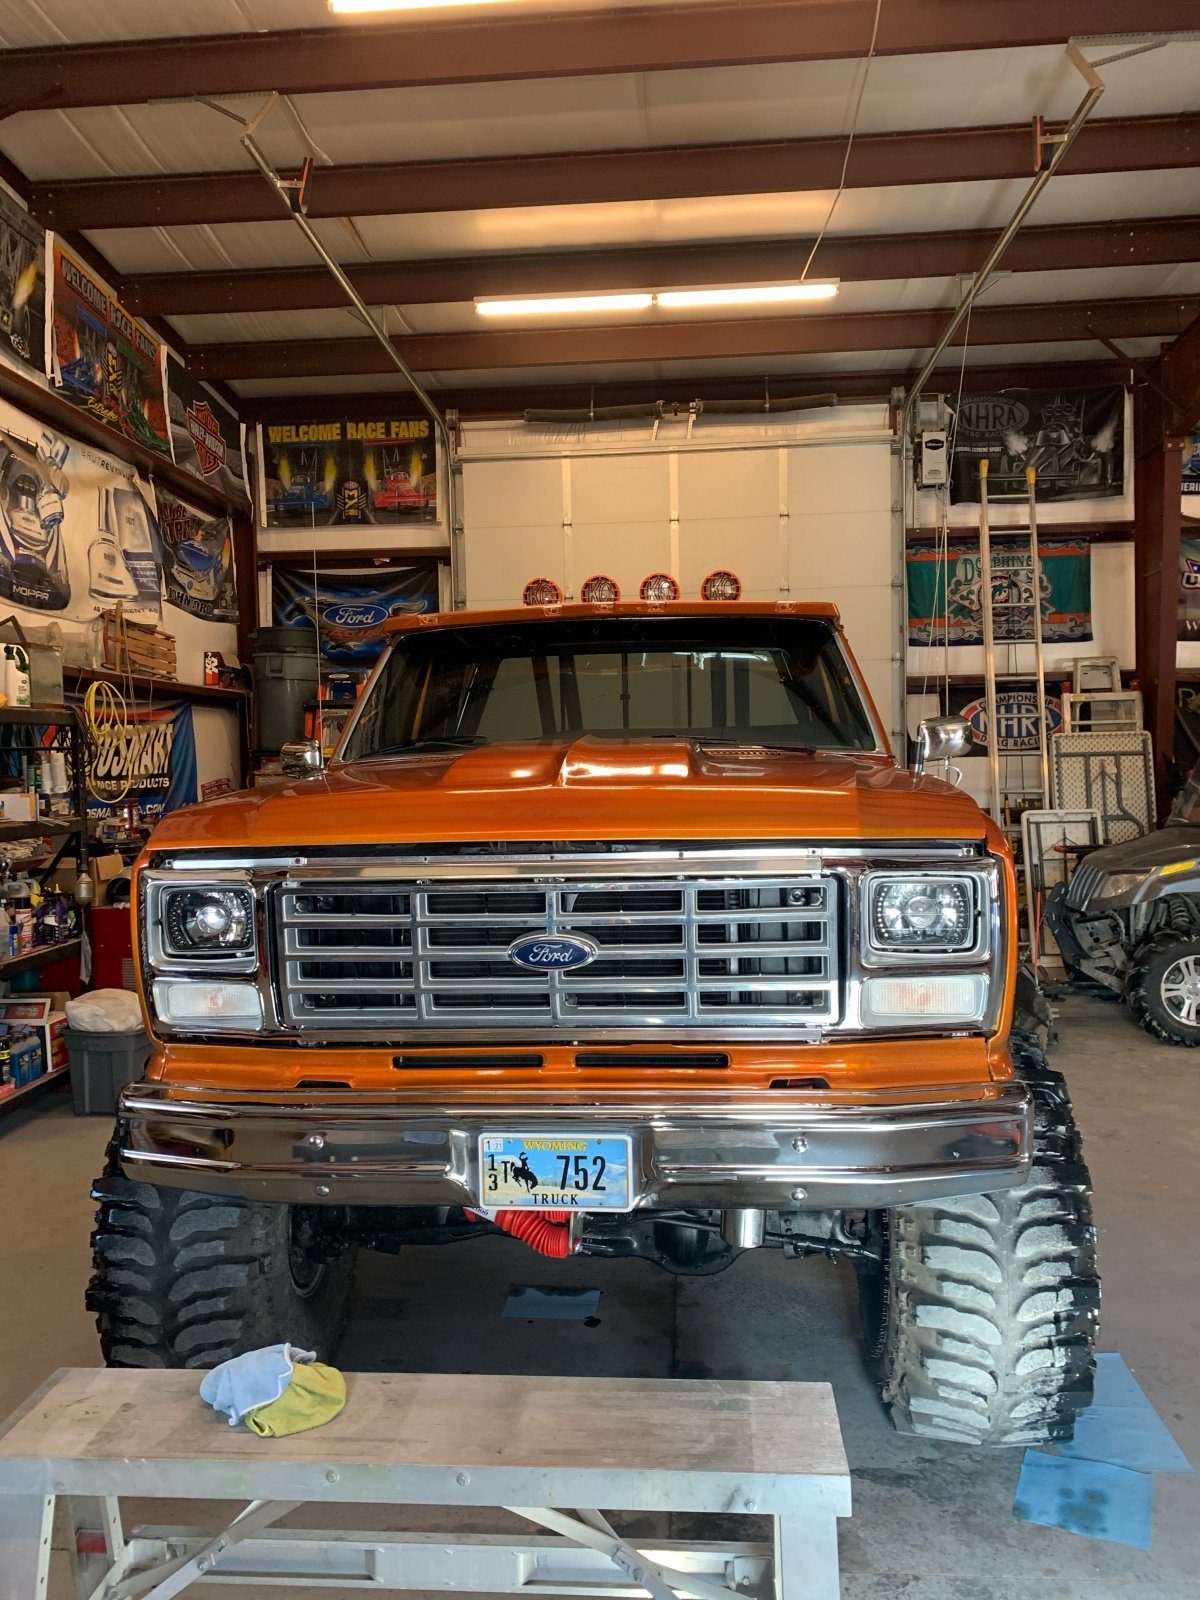 1982 Ford F150 460 Under The Hood On Boggers 2.jpeg